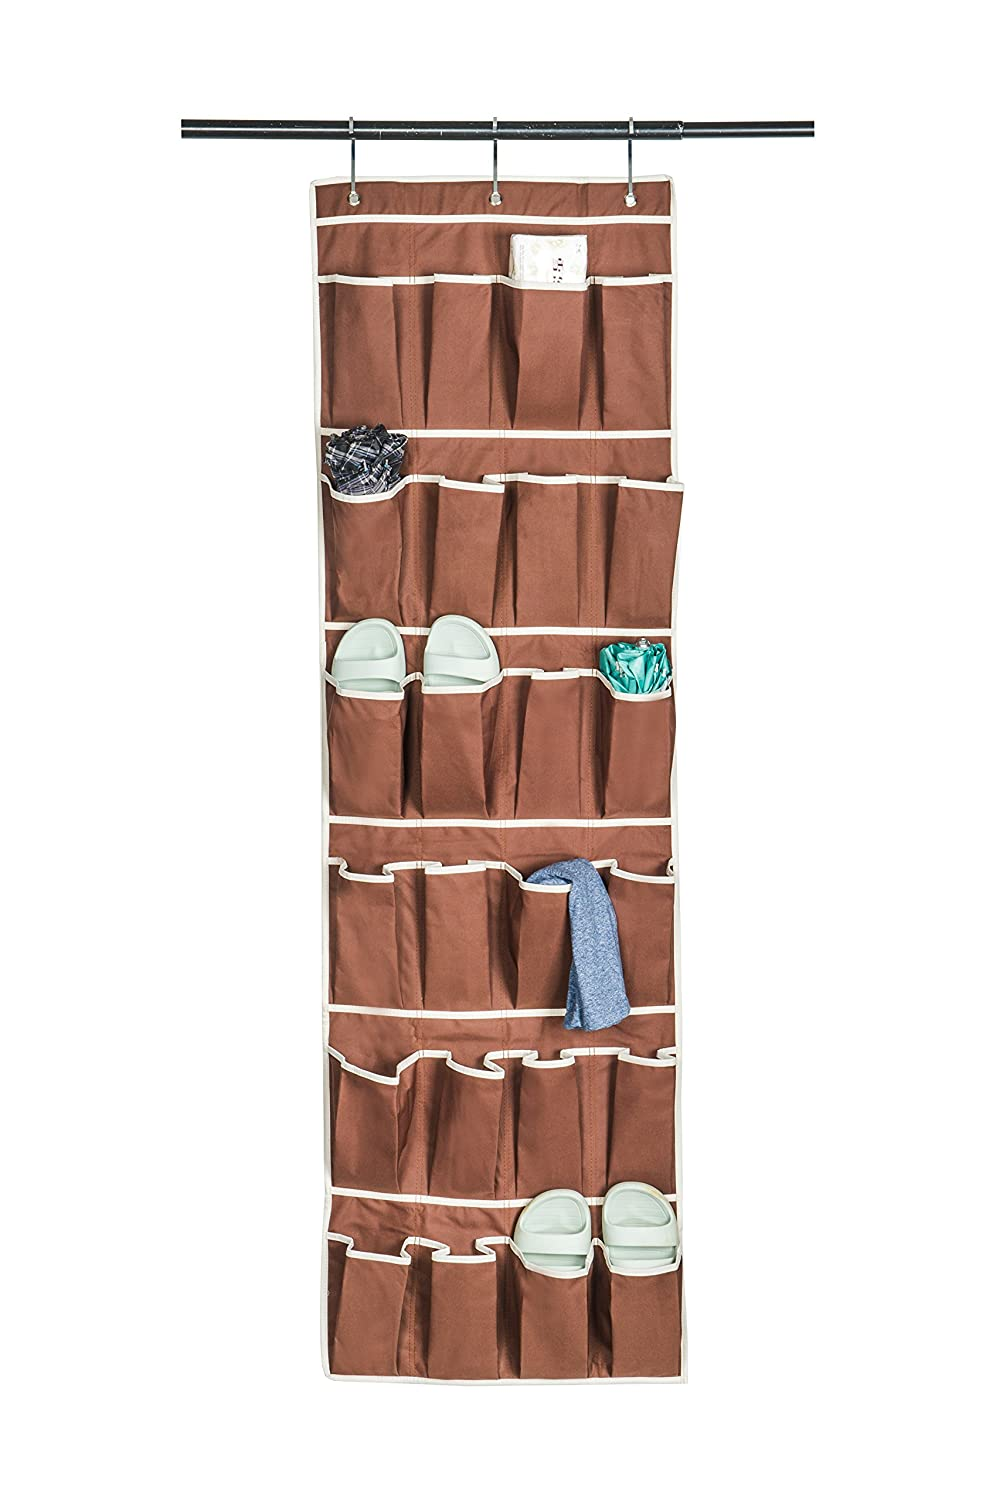 Amelitory Over The Door Shoe Organizer 20 Pockets Hanging Shoe Storage Fabric Beige US Houseware